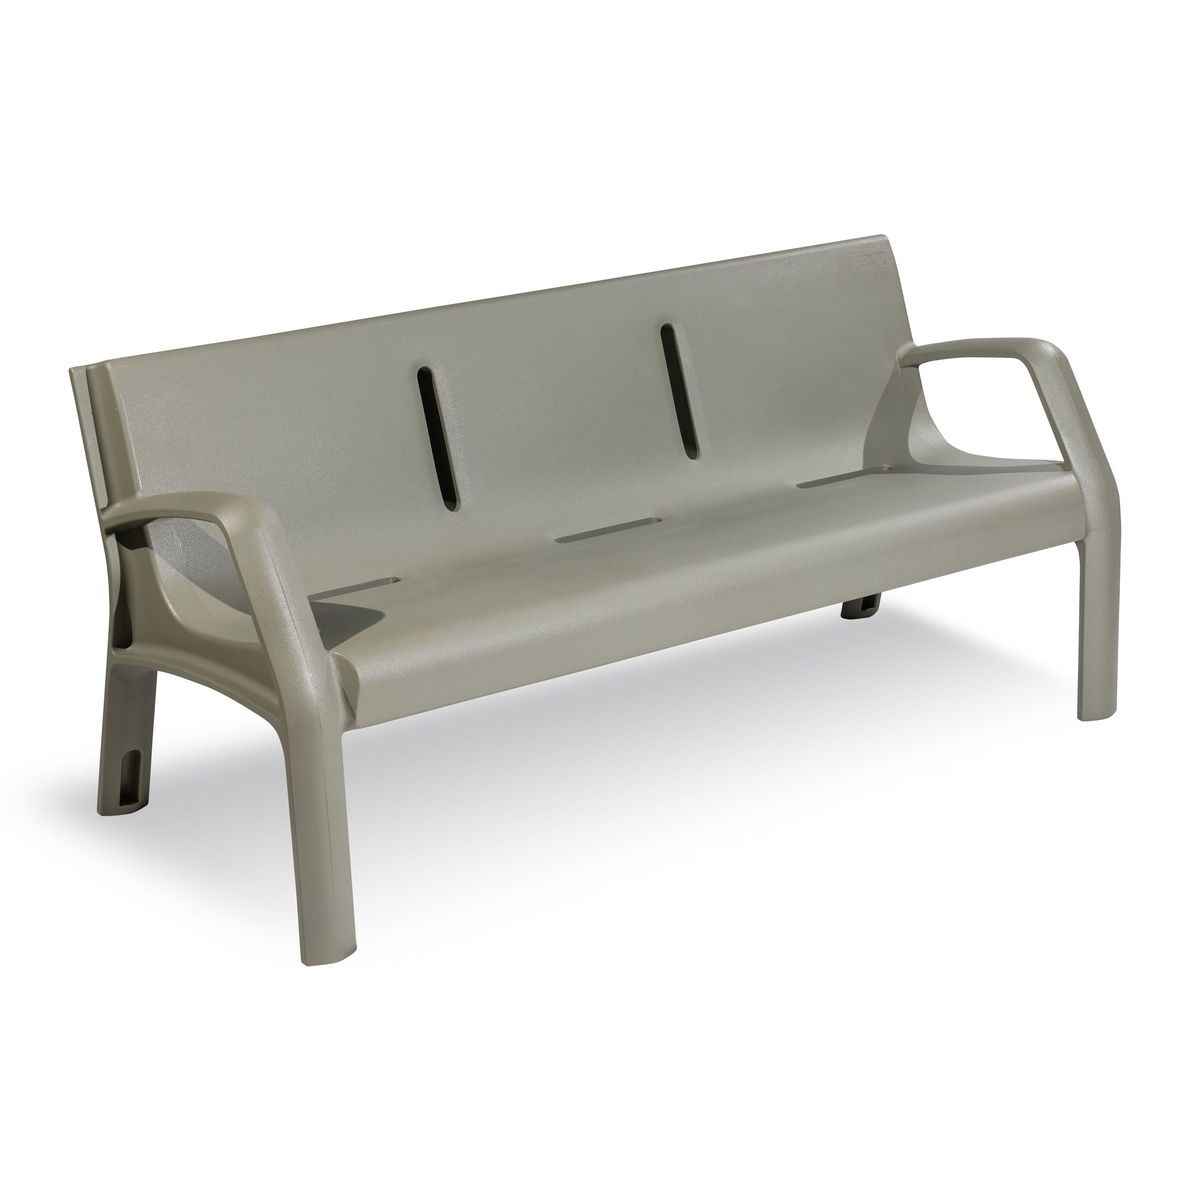 Alvium Bench Gray C-1017-7039